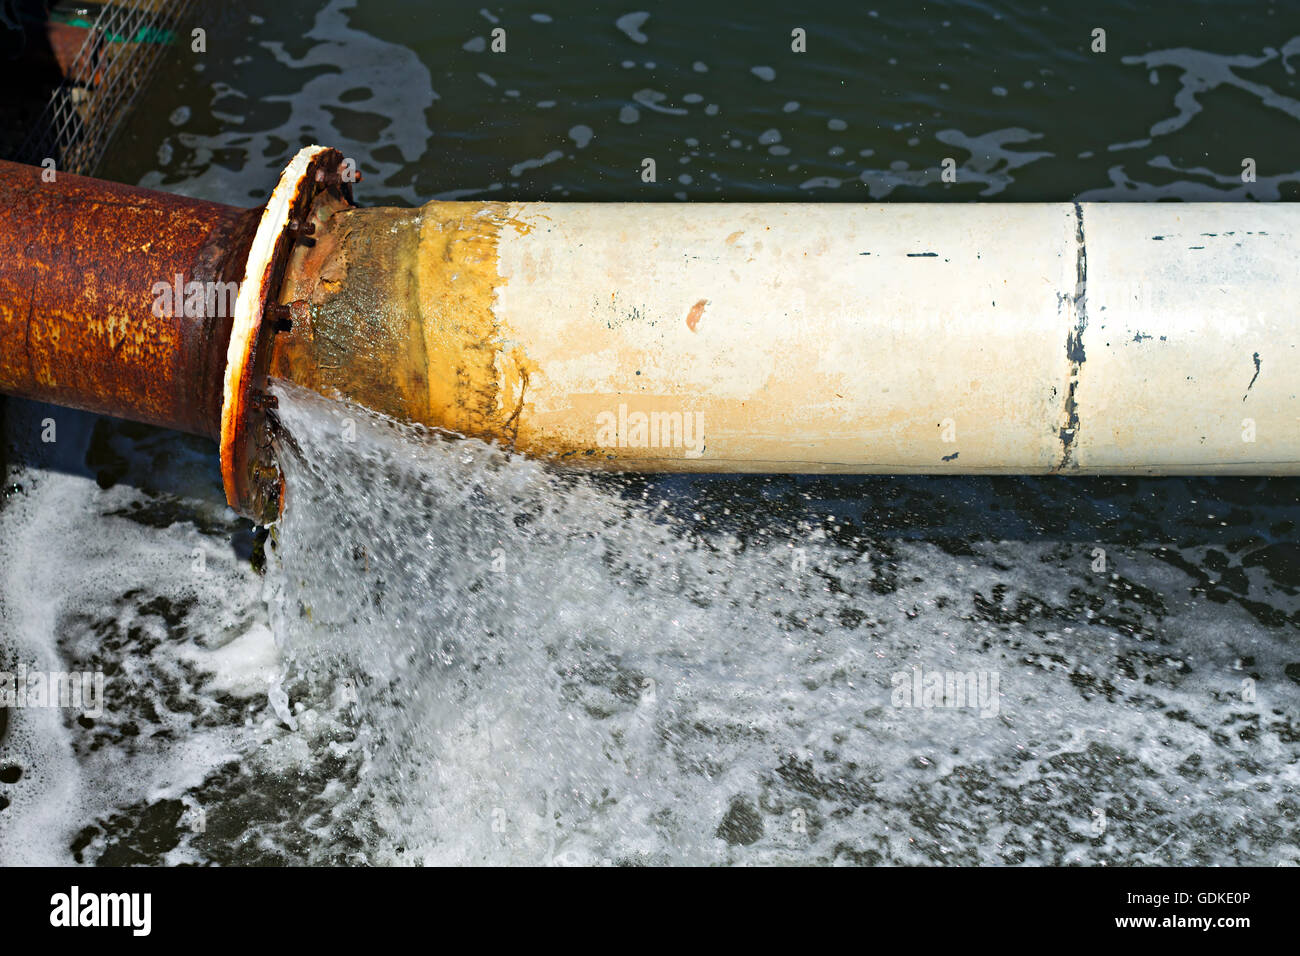 Water pouring from a fractured large diameter water pipe - Stock Image